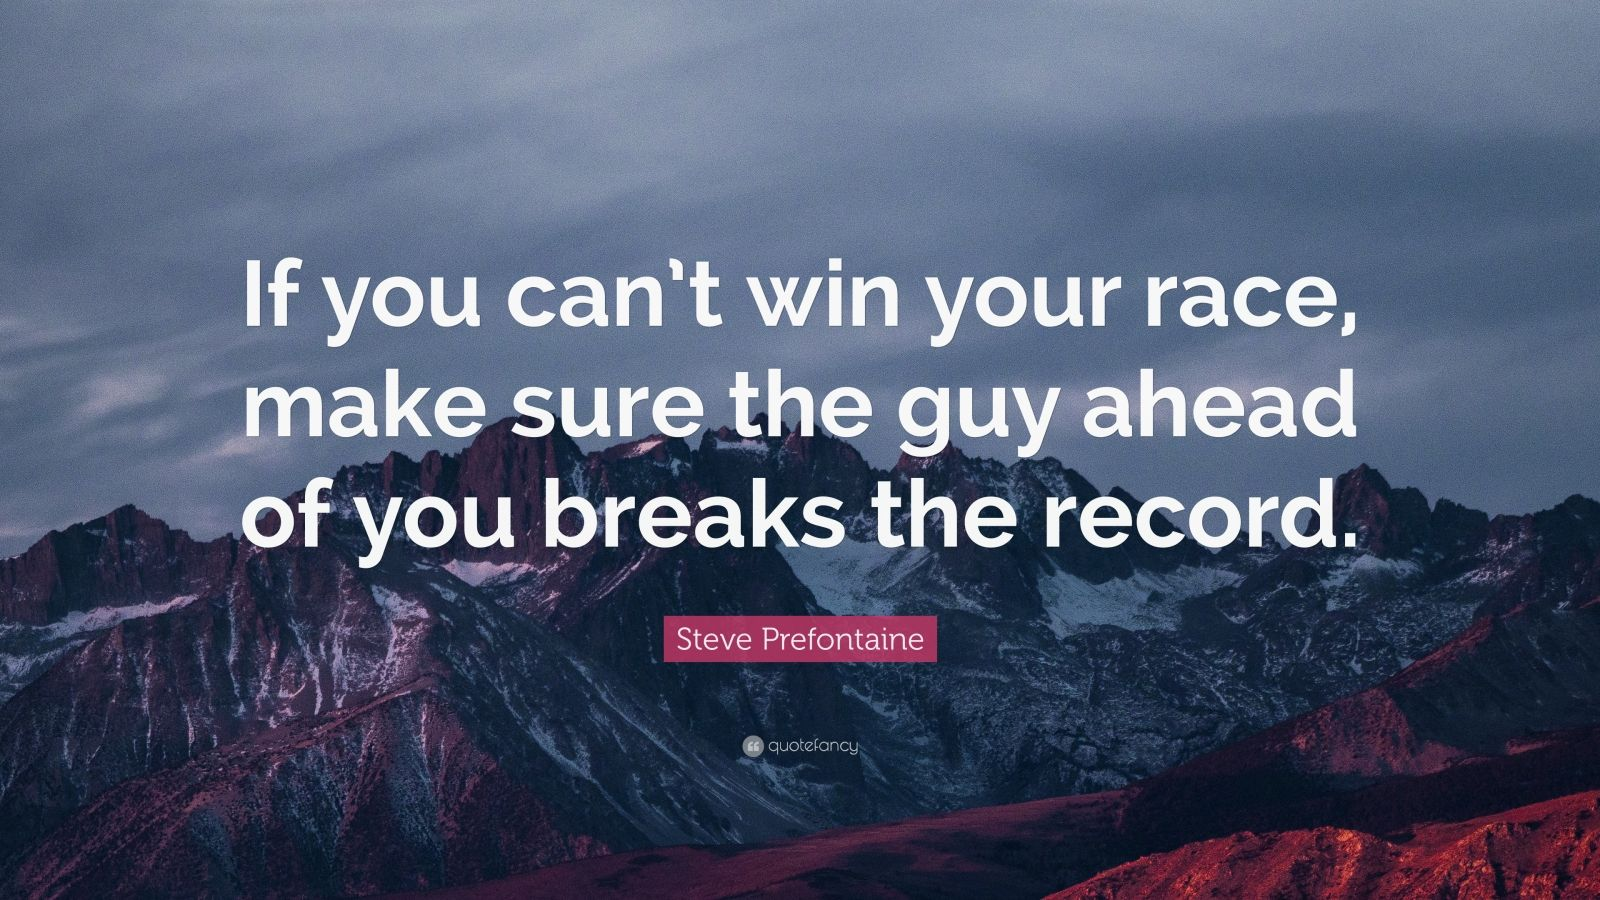 """Steve Prefontaine Quote: """"If you can't win your race, make sure the guy ahead of you breaks the record."""""""